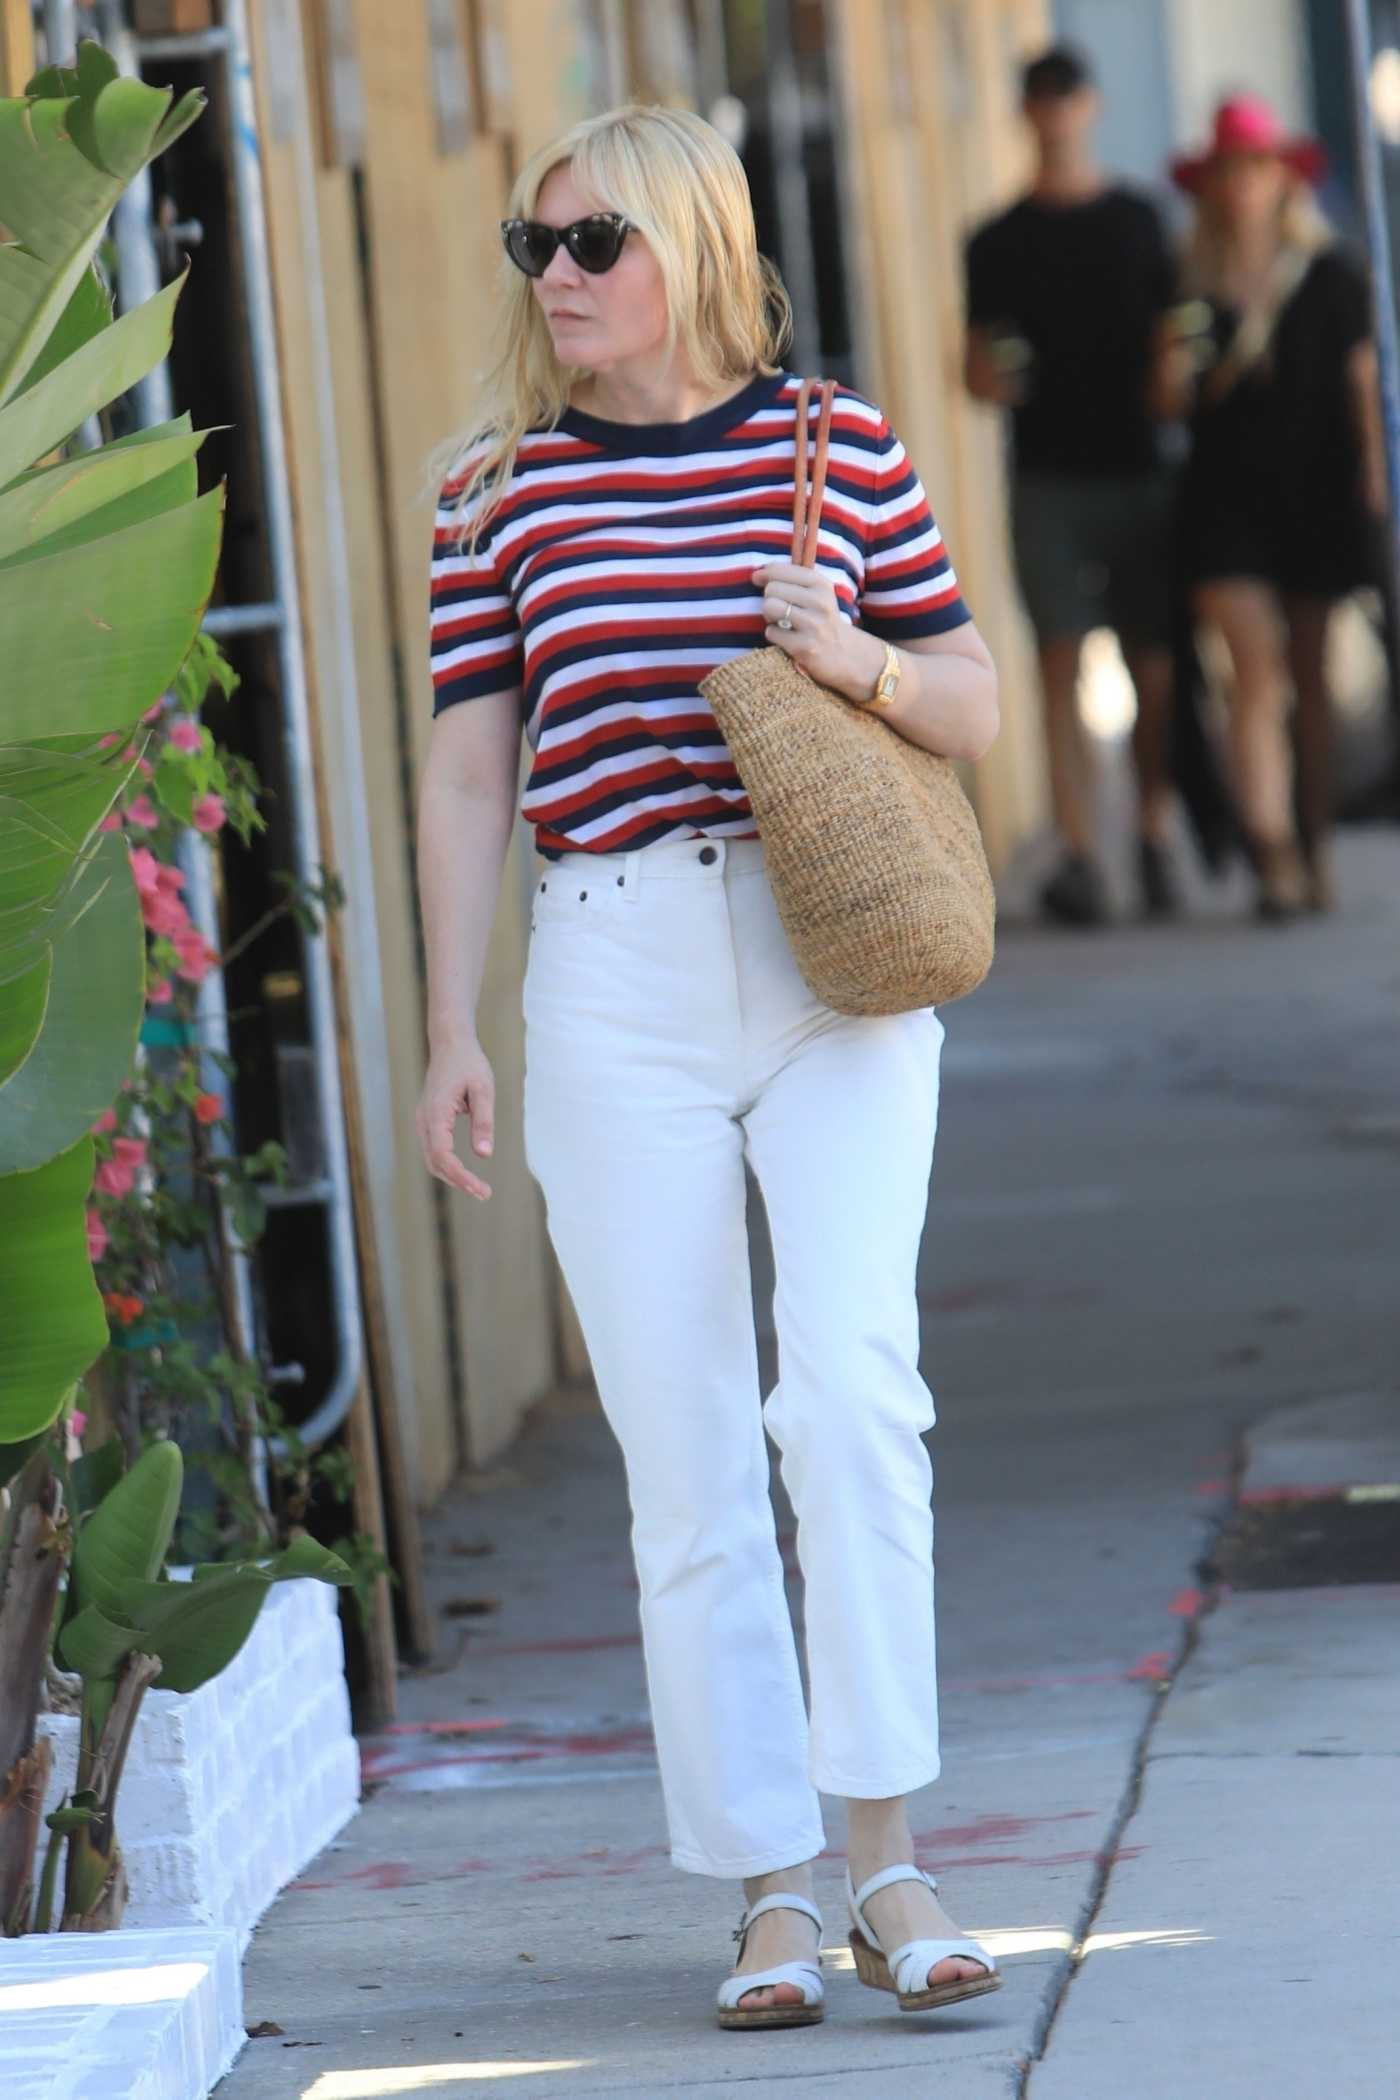 Kirsten Dunst in a Striped Tee Leaves the Hair Salon in West Hollywood 08/27/2019